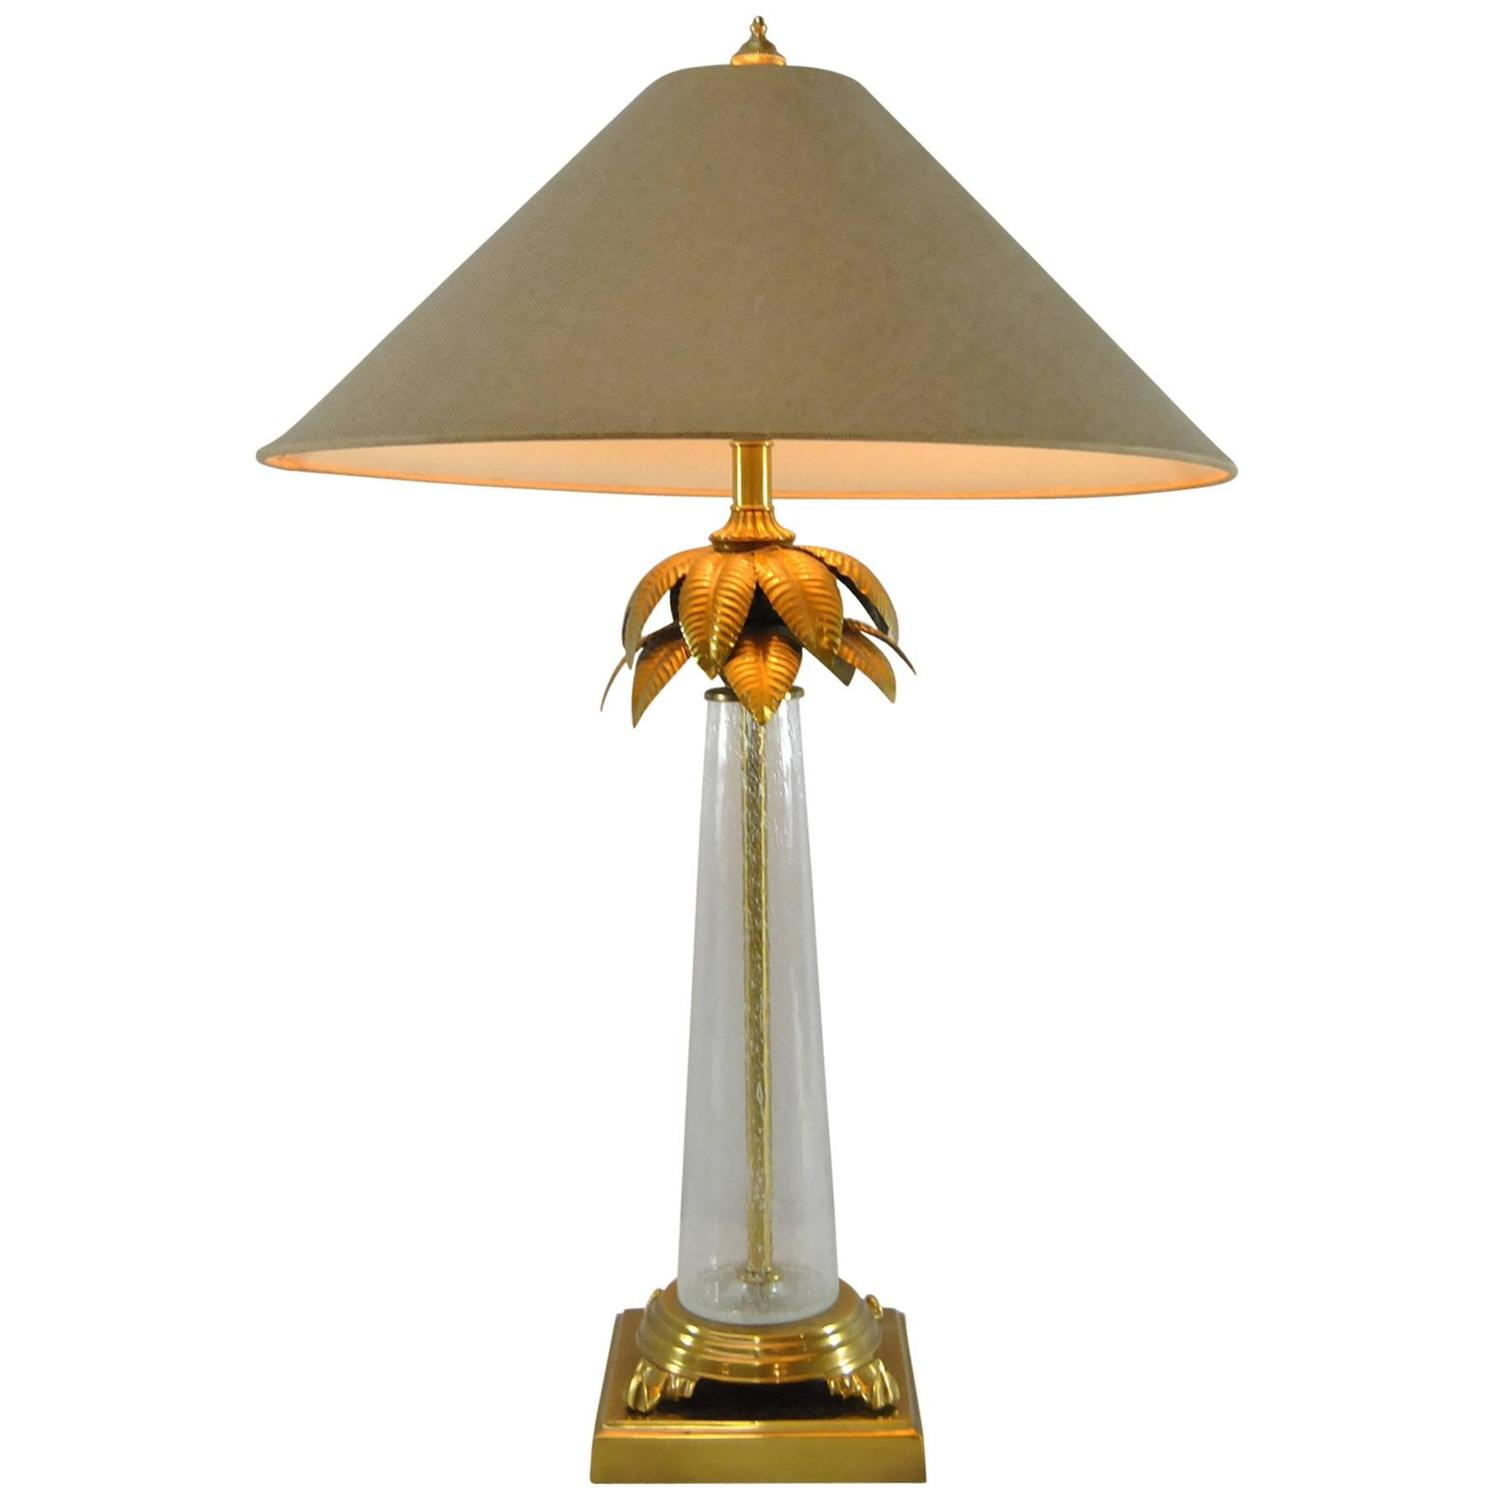 Handblown glass and brass palm tree table lamp by frederick cooper for sale at 1stdibs